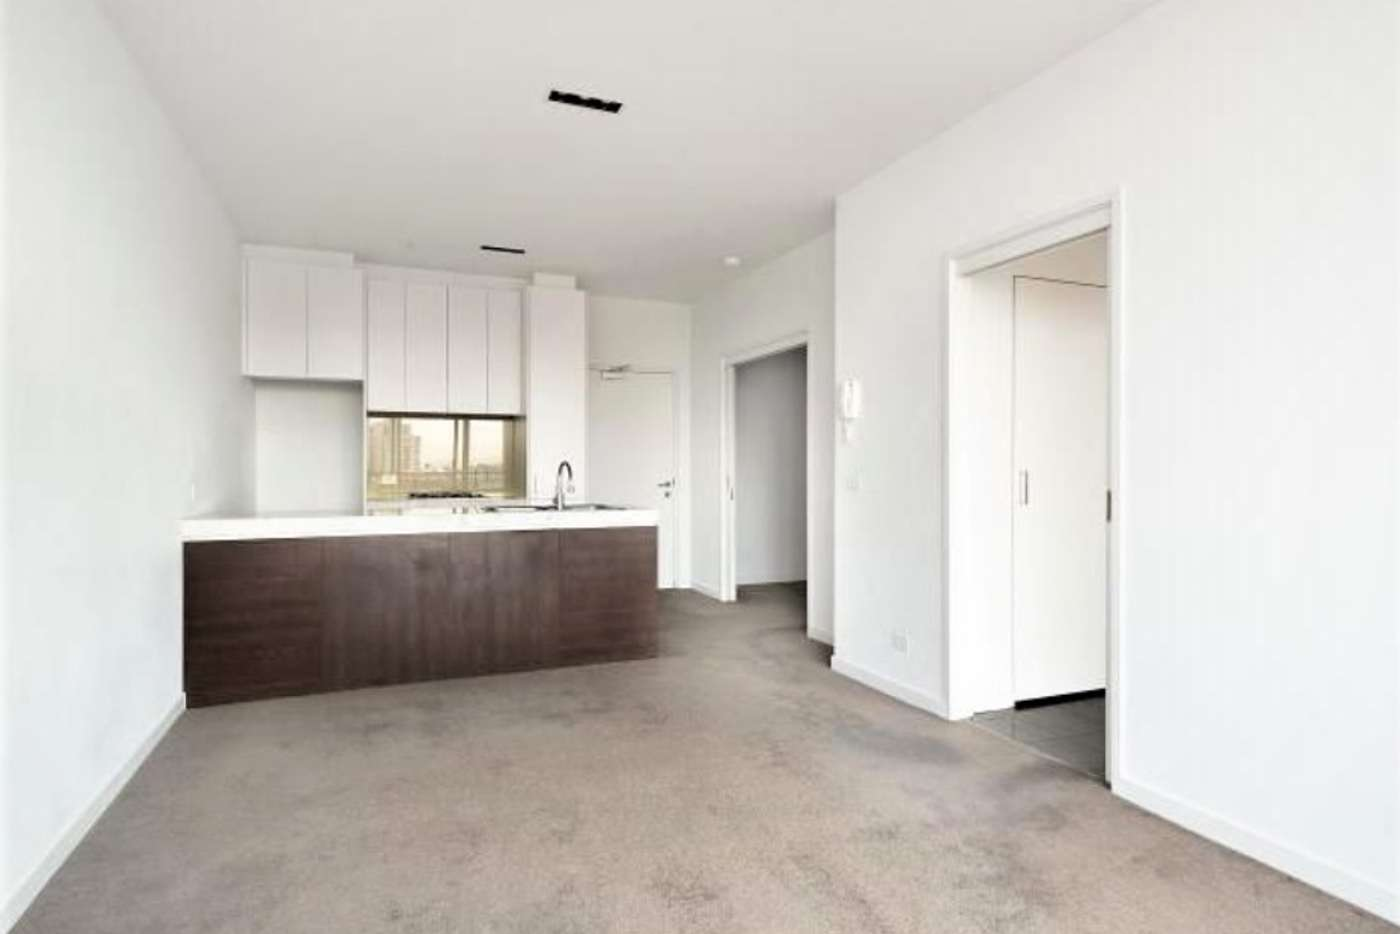 Sixth view of Homely apartment listing, 1604/483 Swanston St, Melbourne VIC 3000